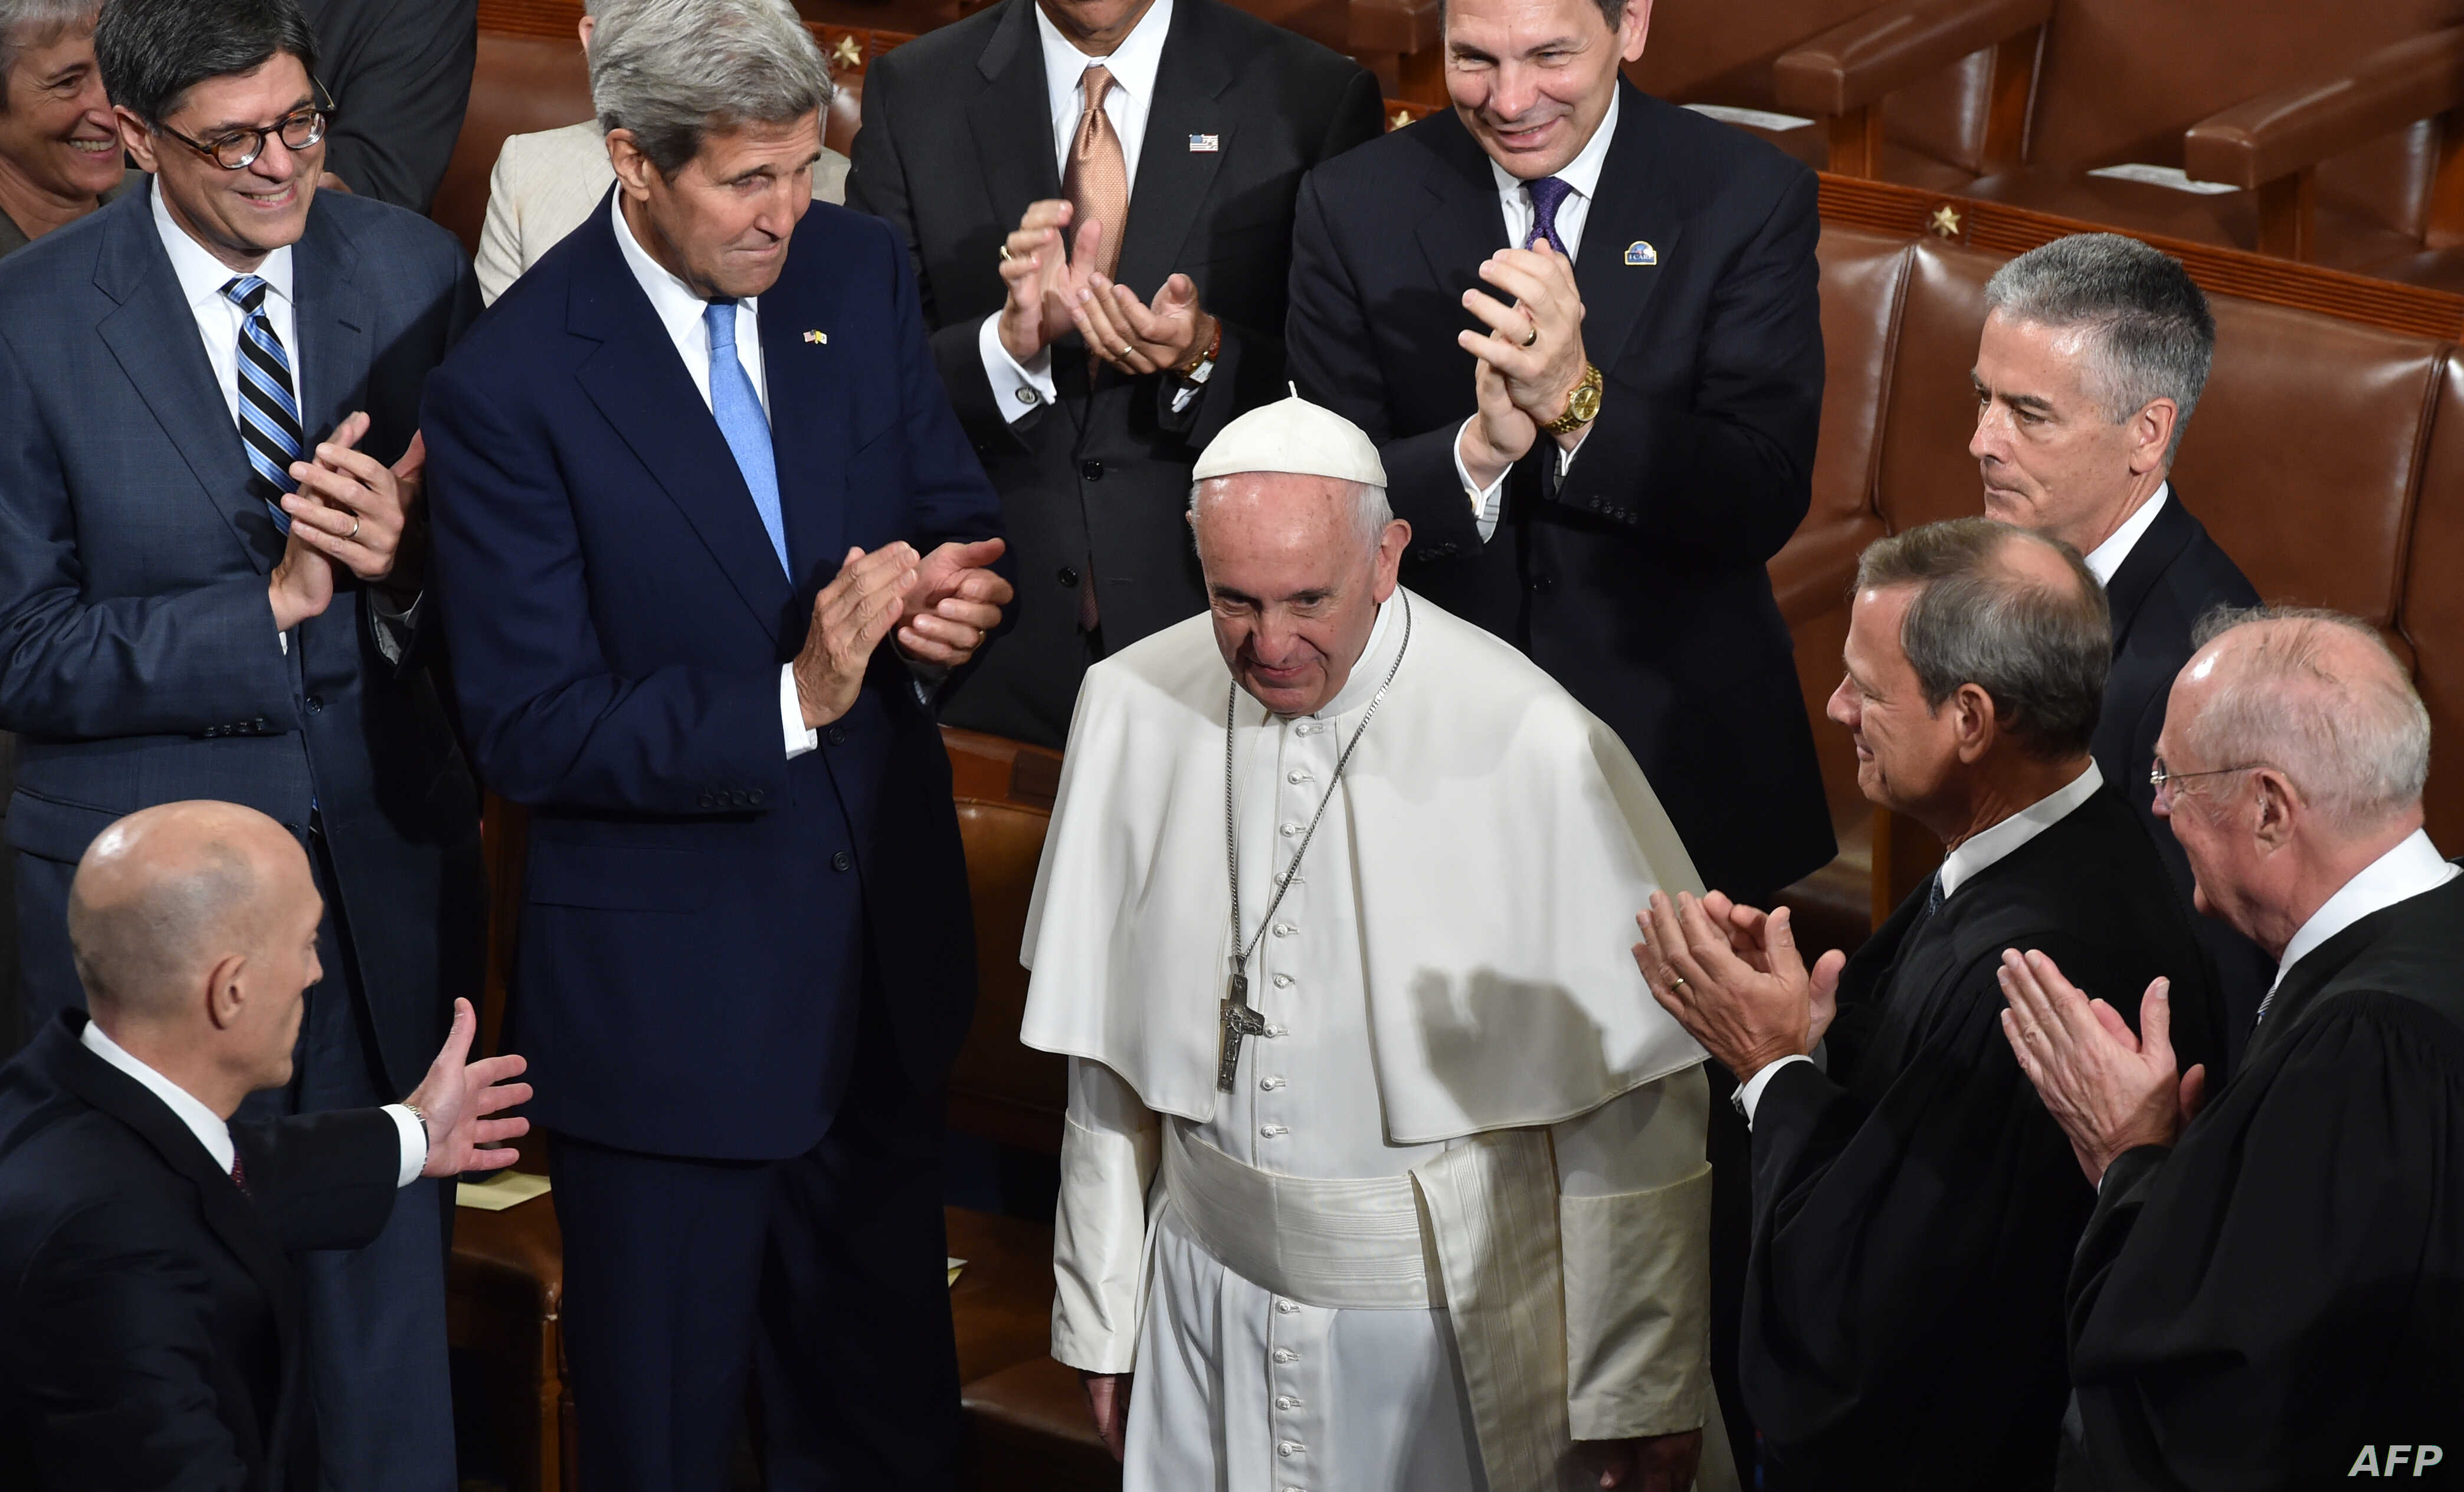 US Secretary of Stae John Kerry(2nd R),Treasury Secretary Jacob Lew (L)justices of the US Supreme Court and other cabinet members applaud as Pope Francis arrives to address the joint session of Congress on September 24, 2014 in Washington, DC.